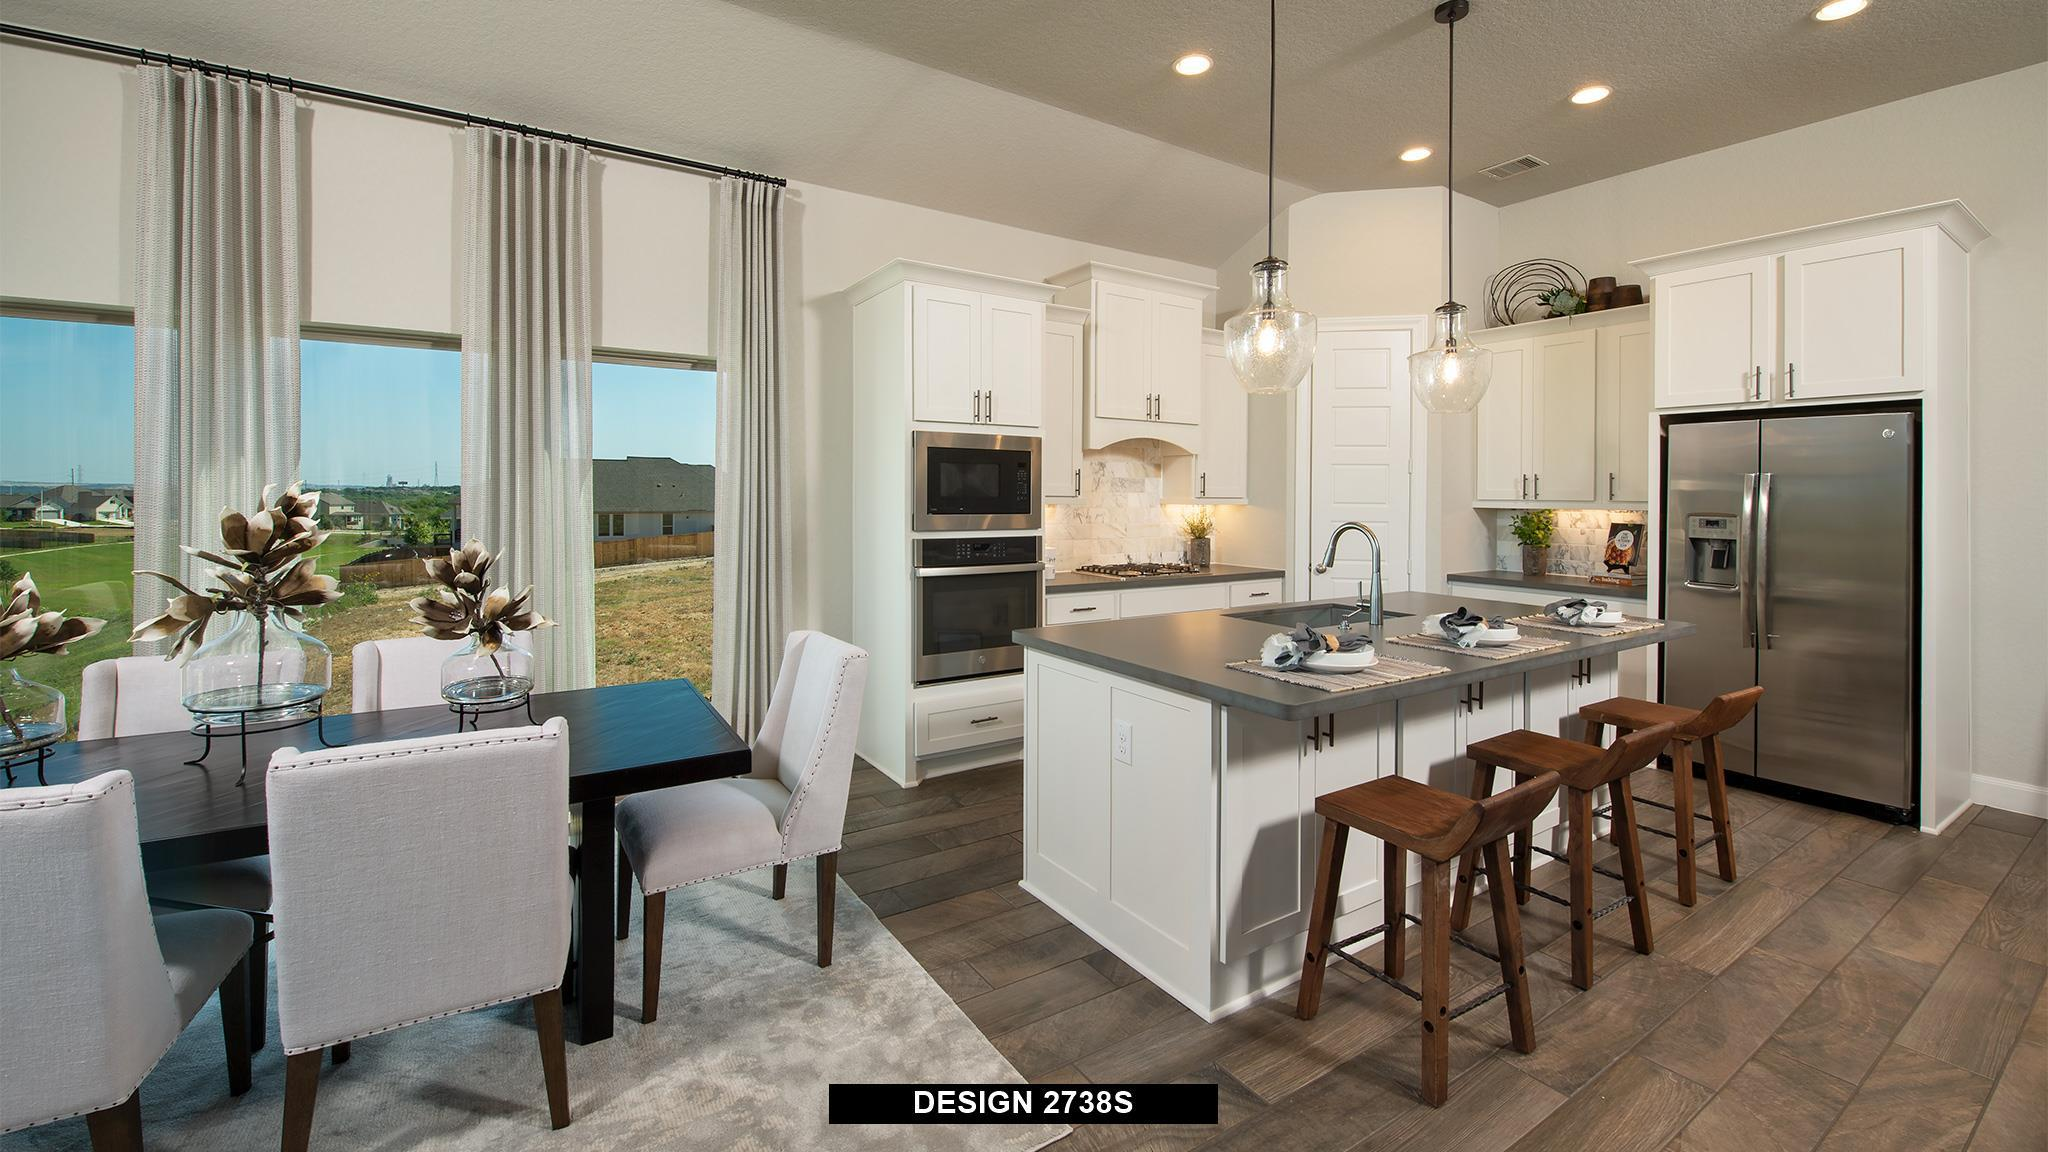 Kitchen featured in the 2738S By Perry Homes in Austin, TX